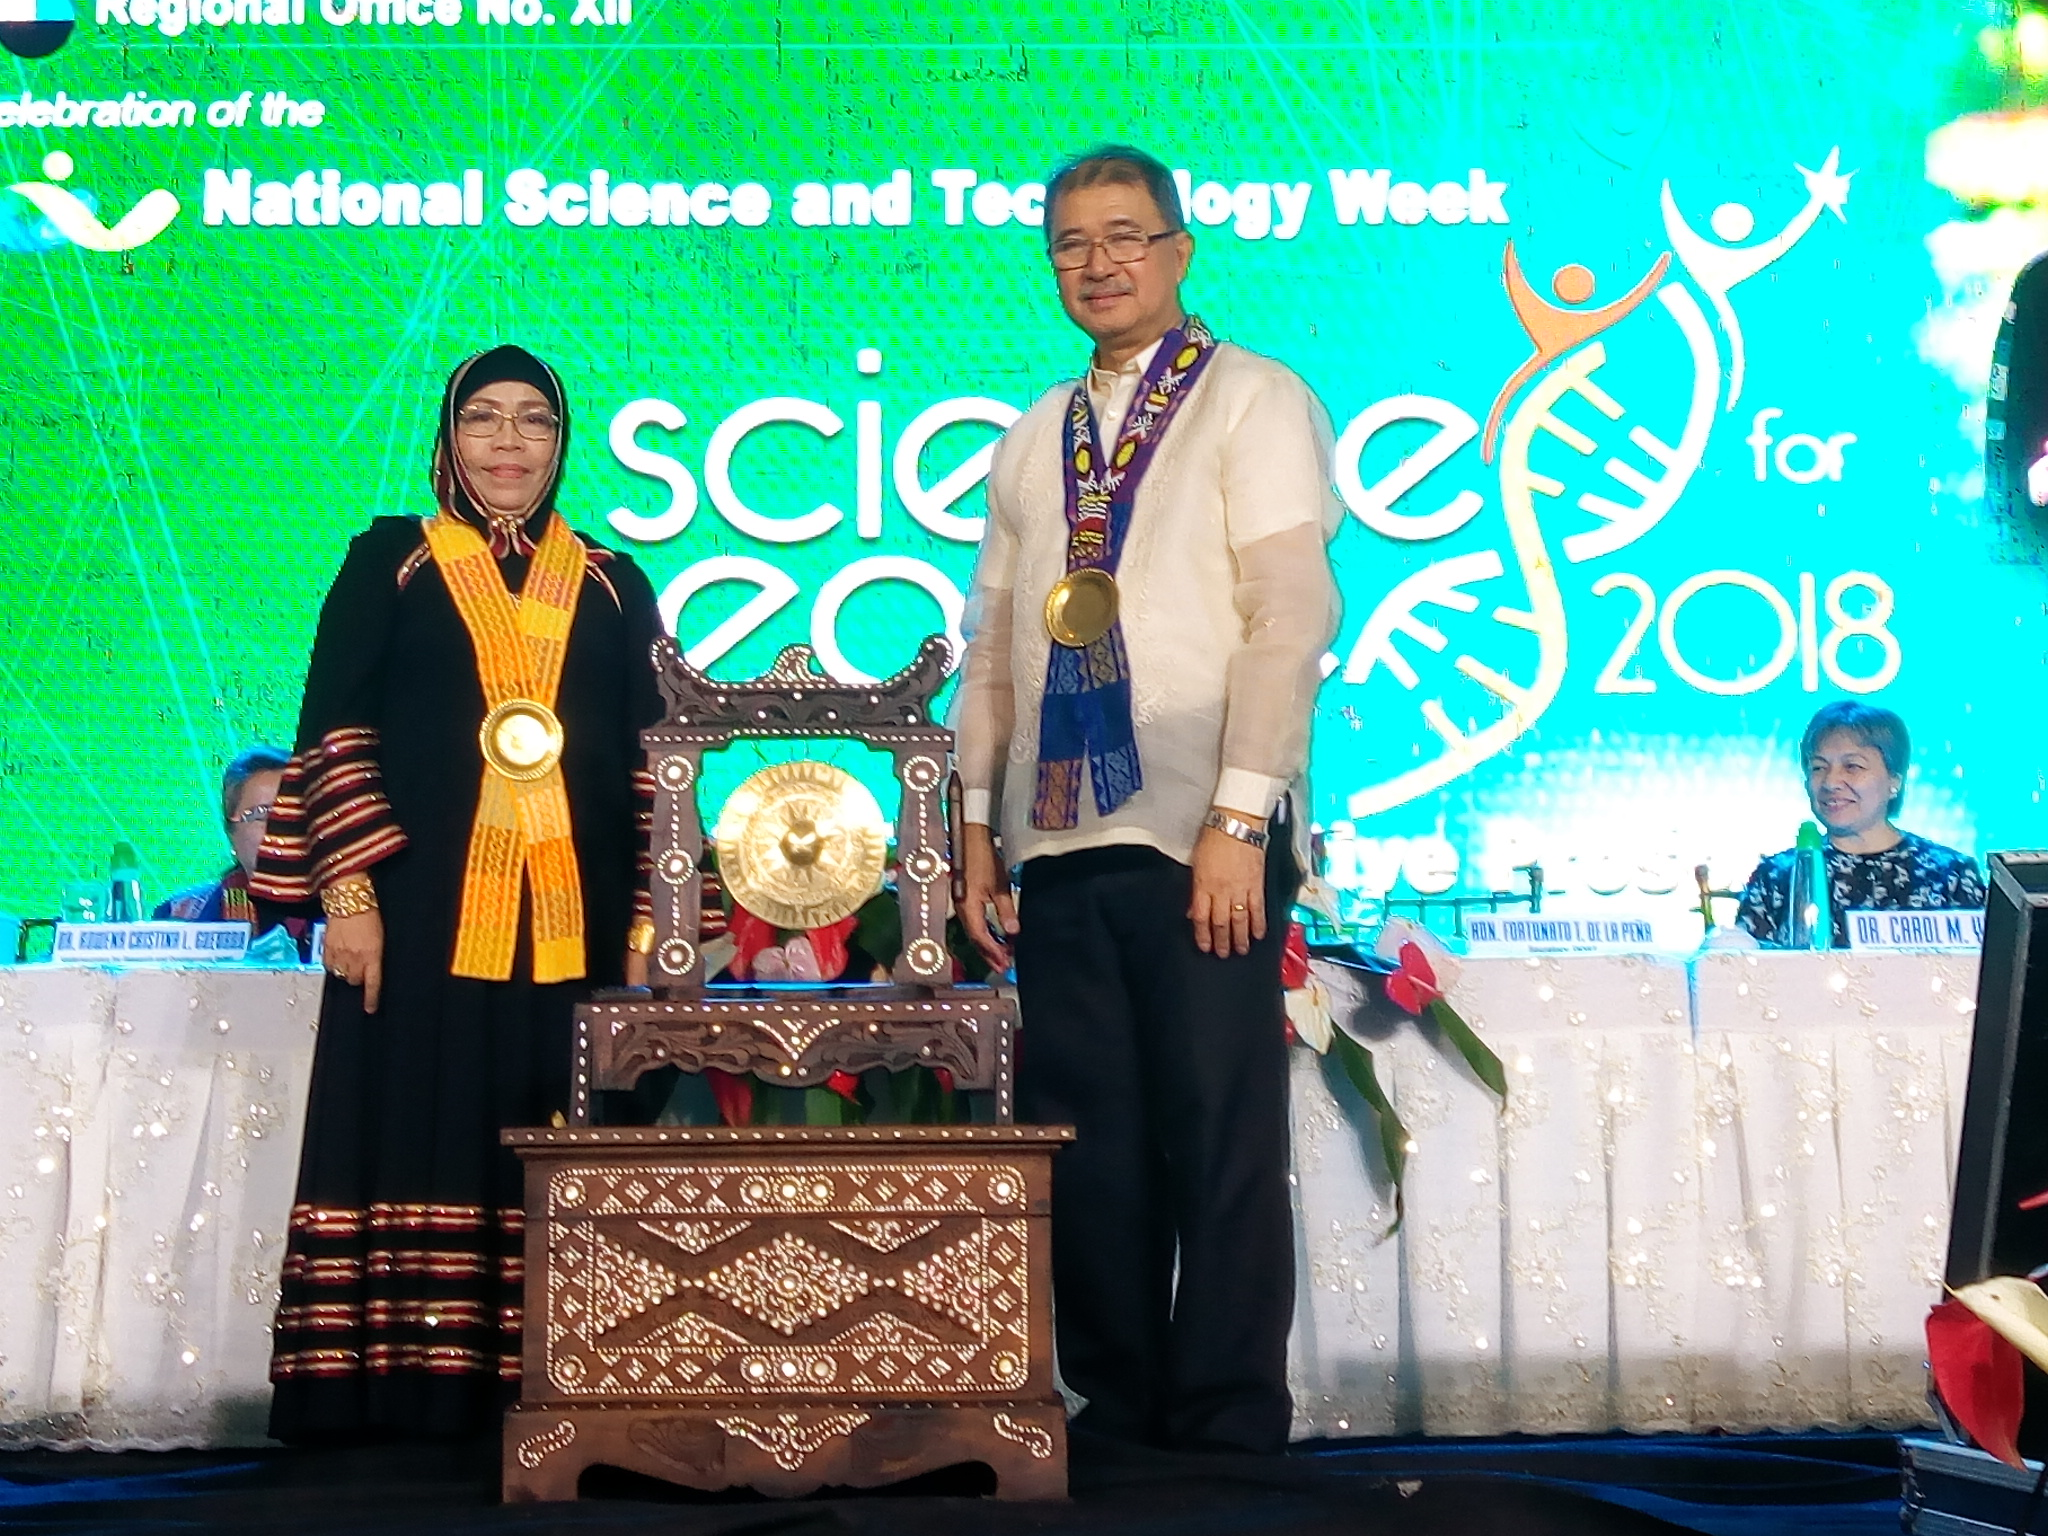 DOST-SOCCSKSARGEN Stages RSTW Celebration; Here's How in Pictures